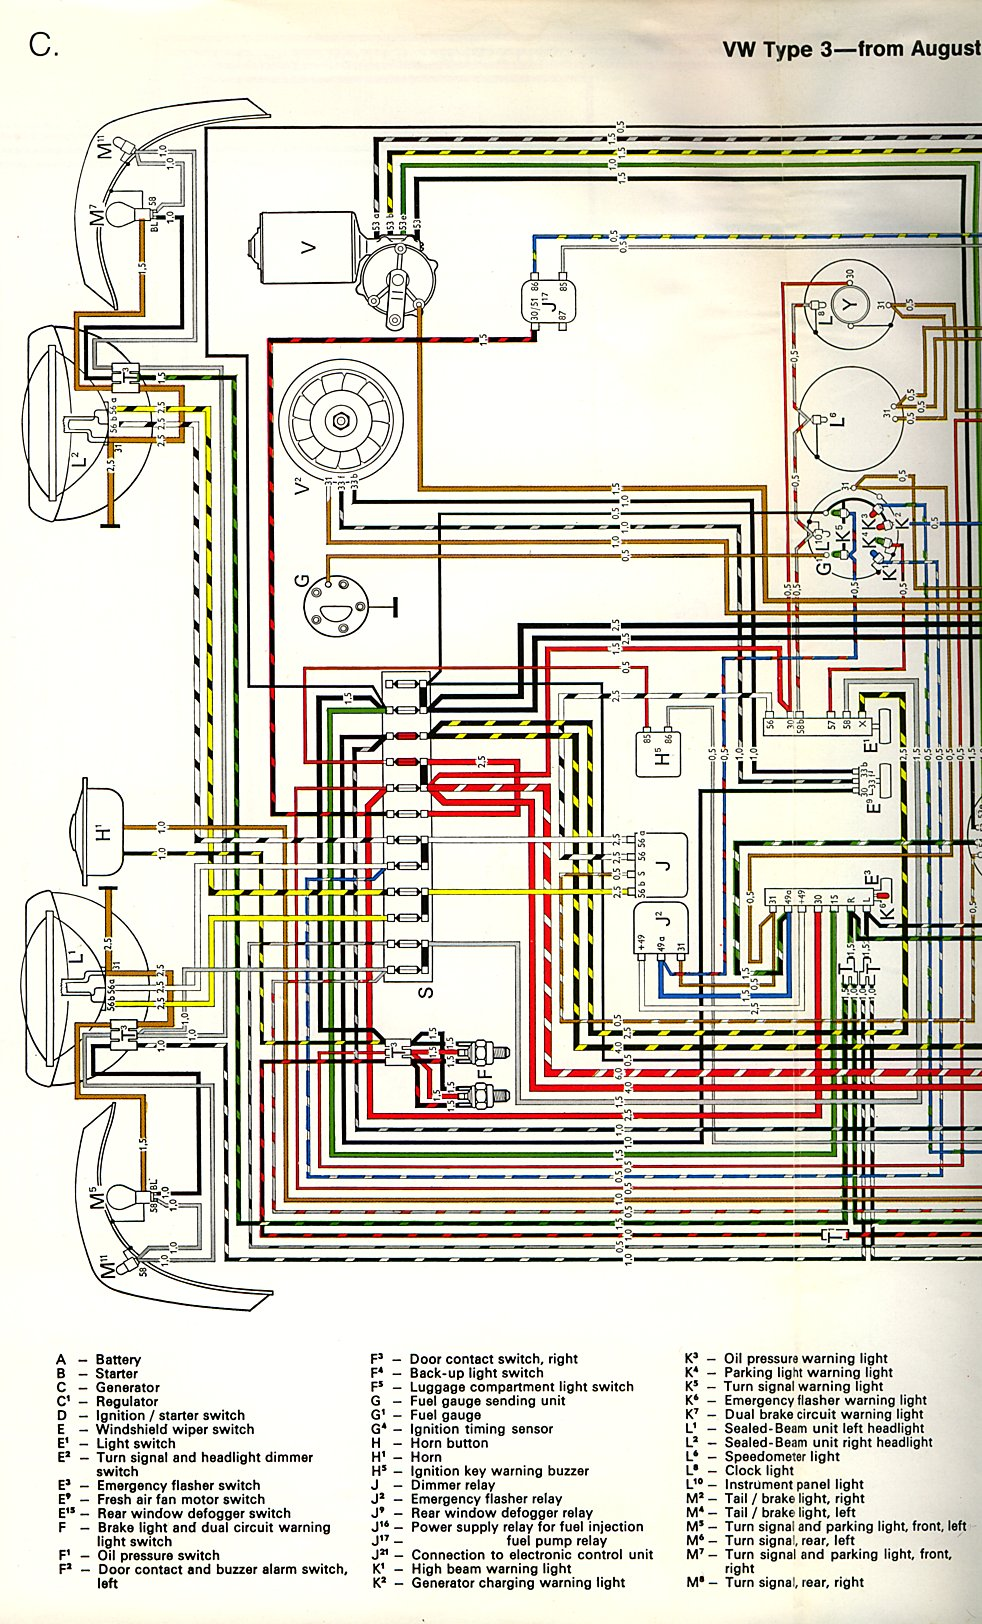 type3_72a thesamba com type 3 wiring diagrams 1973 vw wiring diagram at eliteediting.co